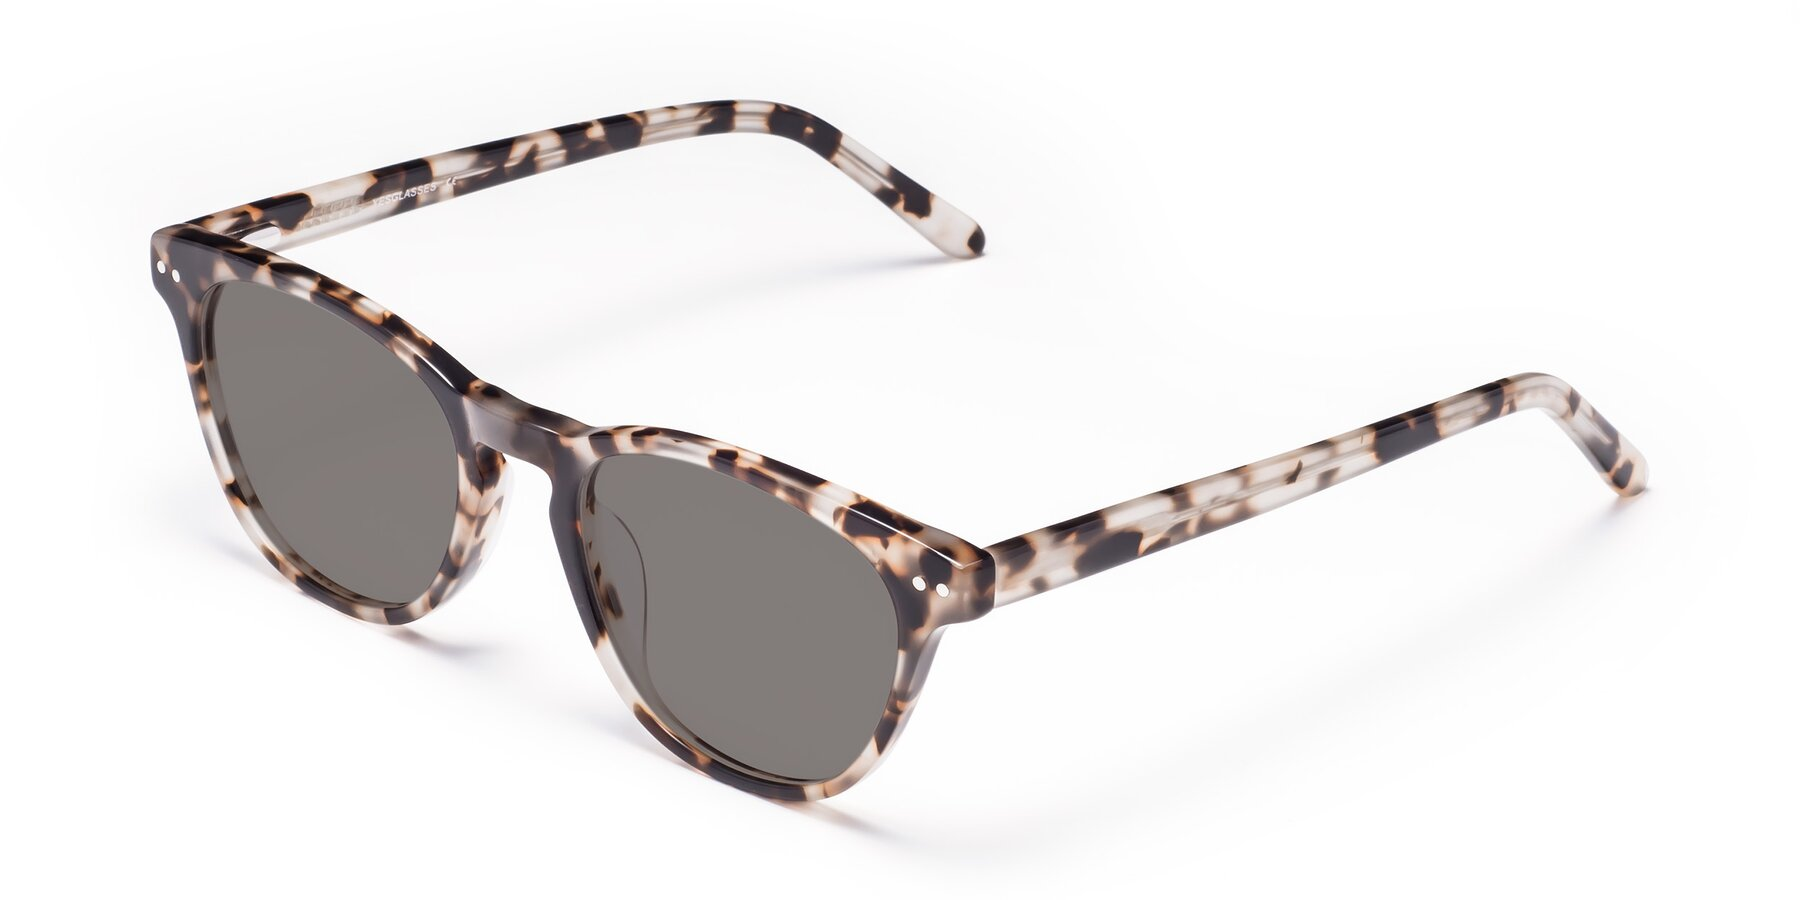 Angle of Blaze in Tortoise with Medium Gray Tinted Lenses